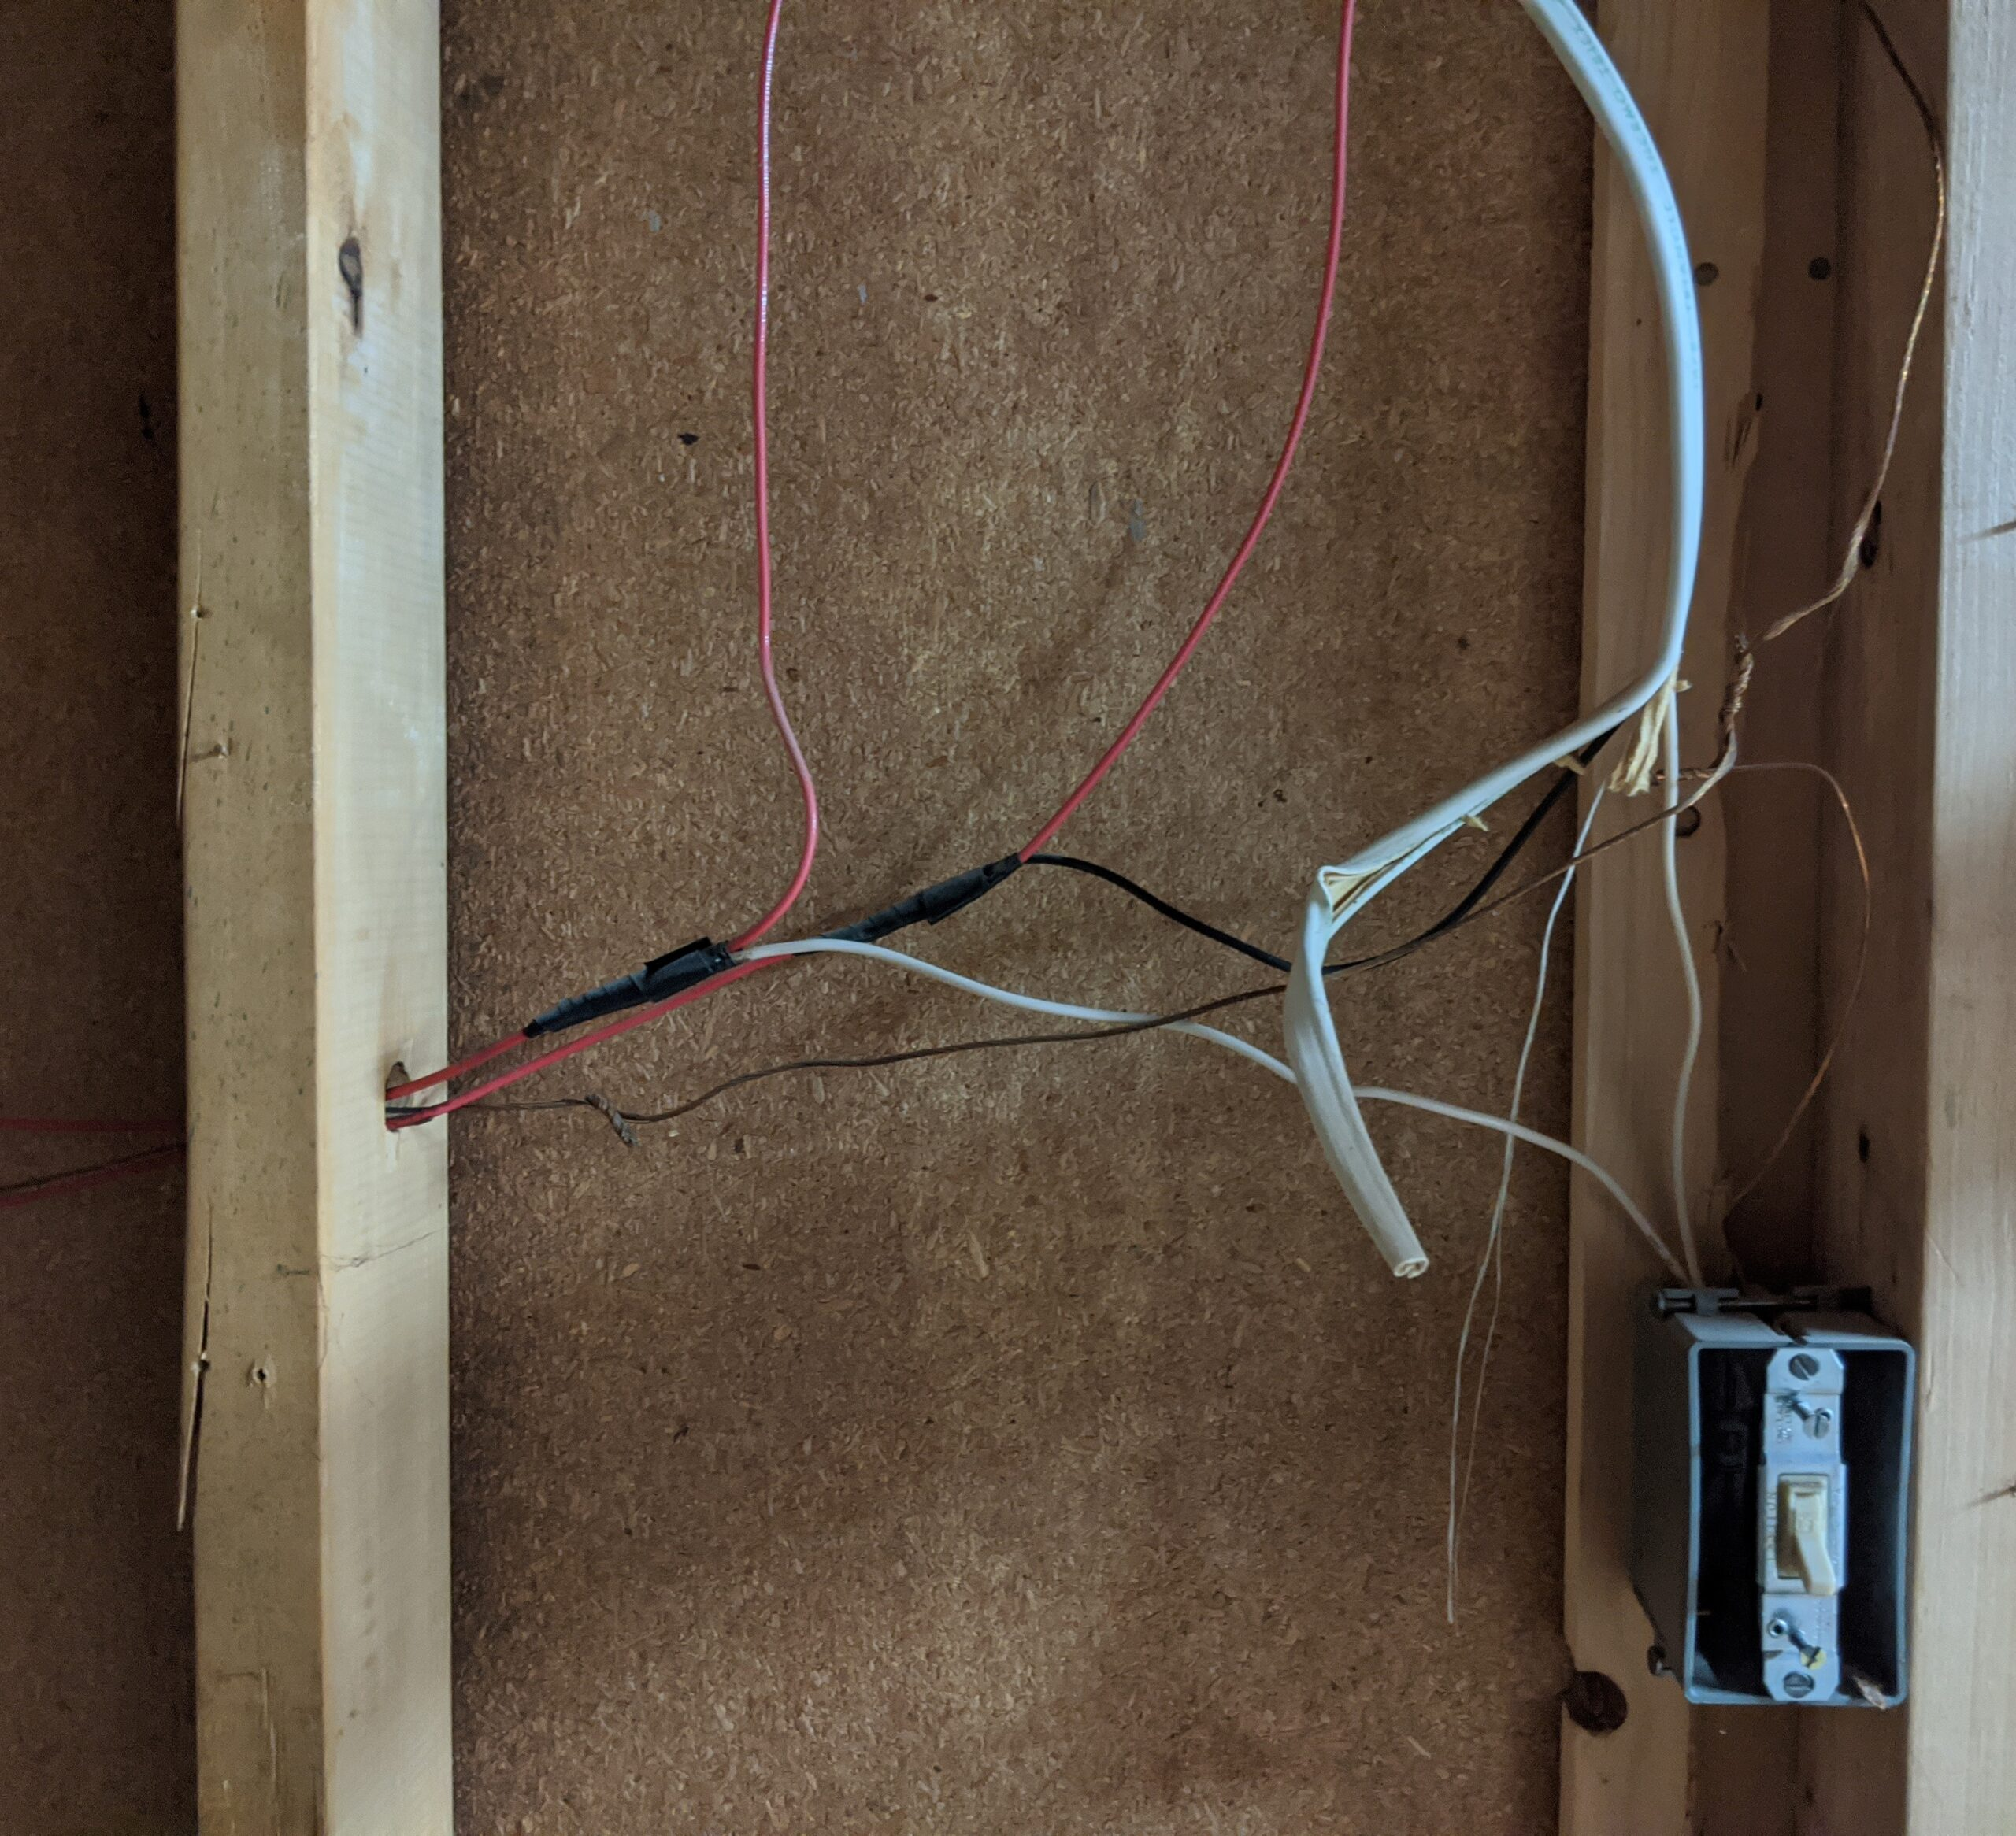 Should you be worried if the wiring looks like this?